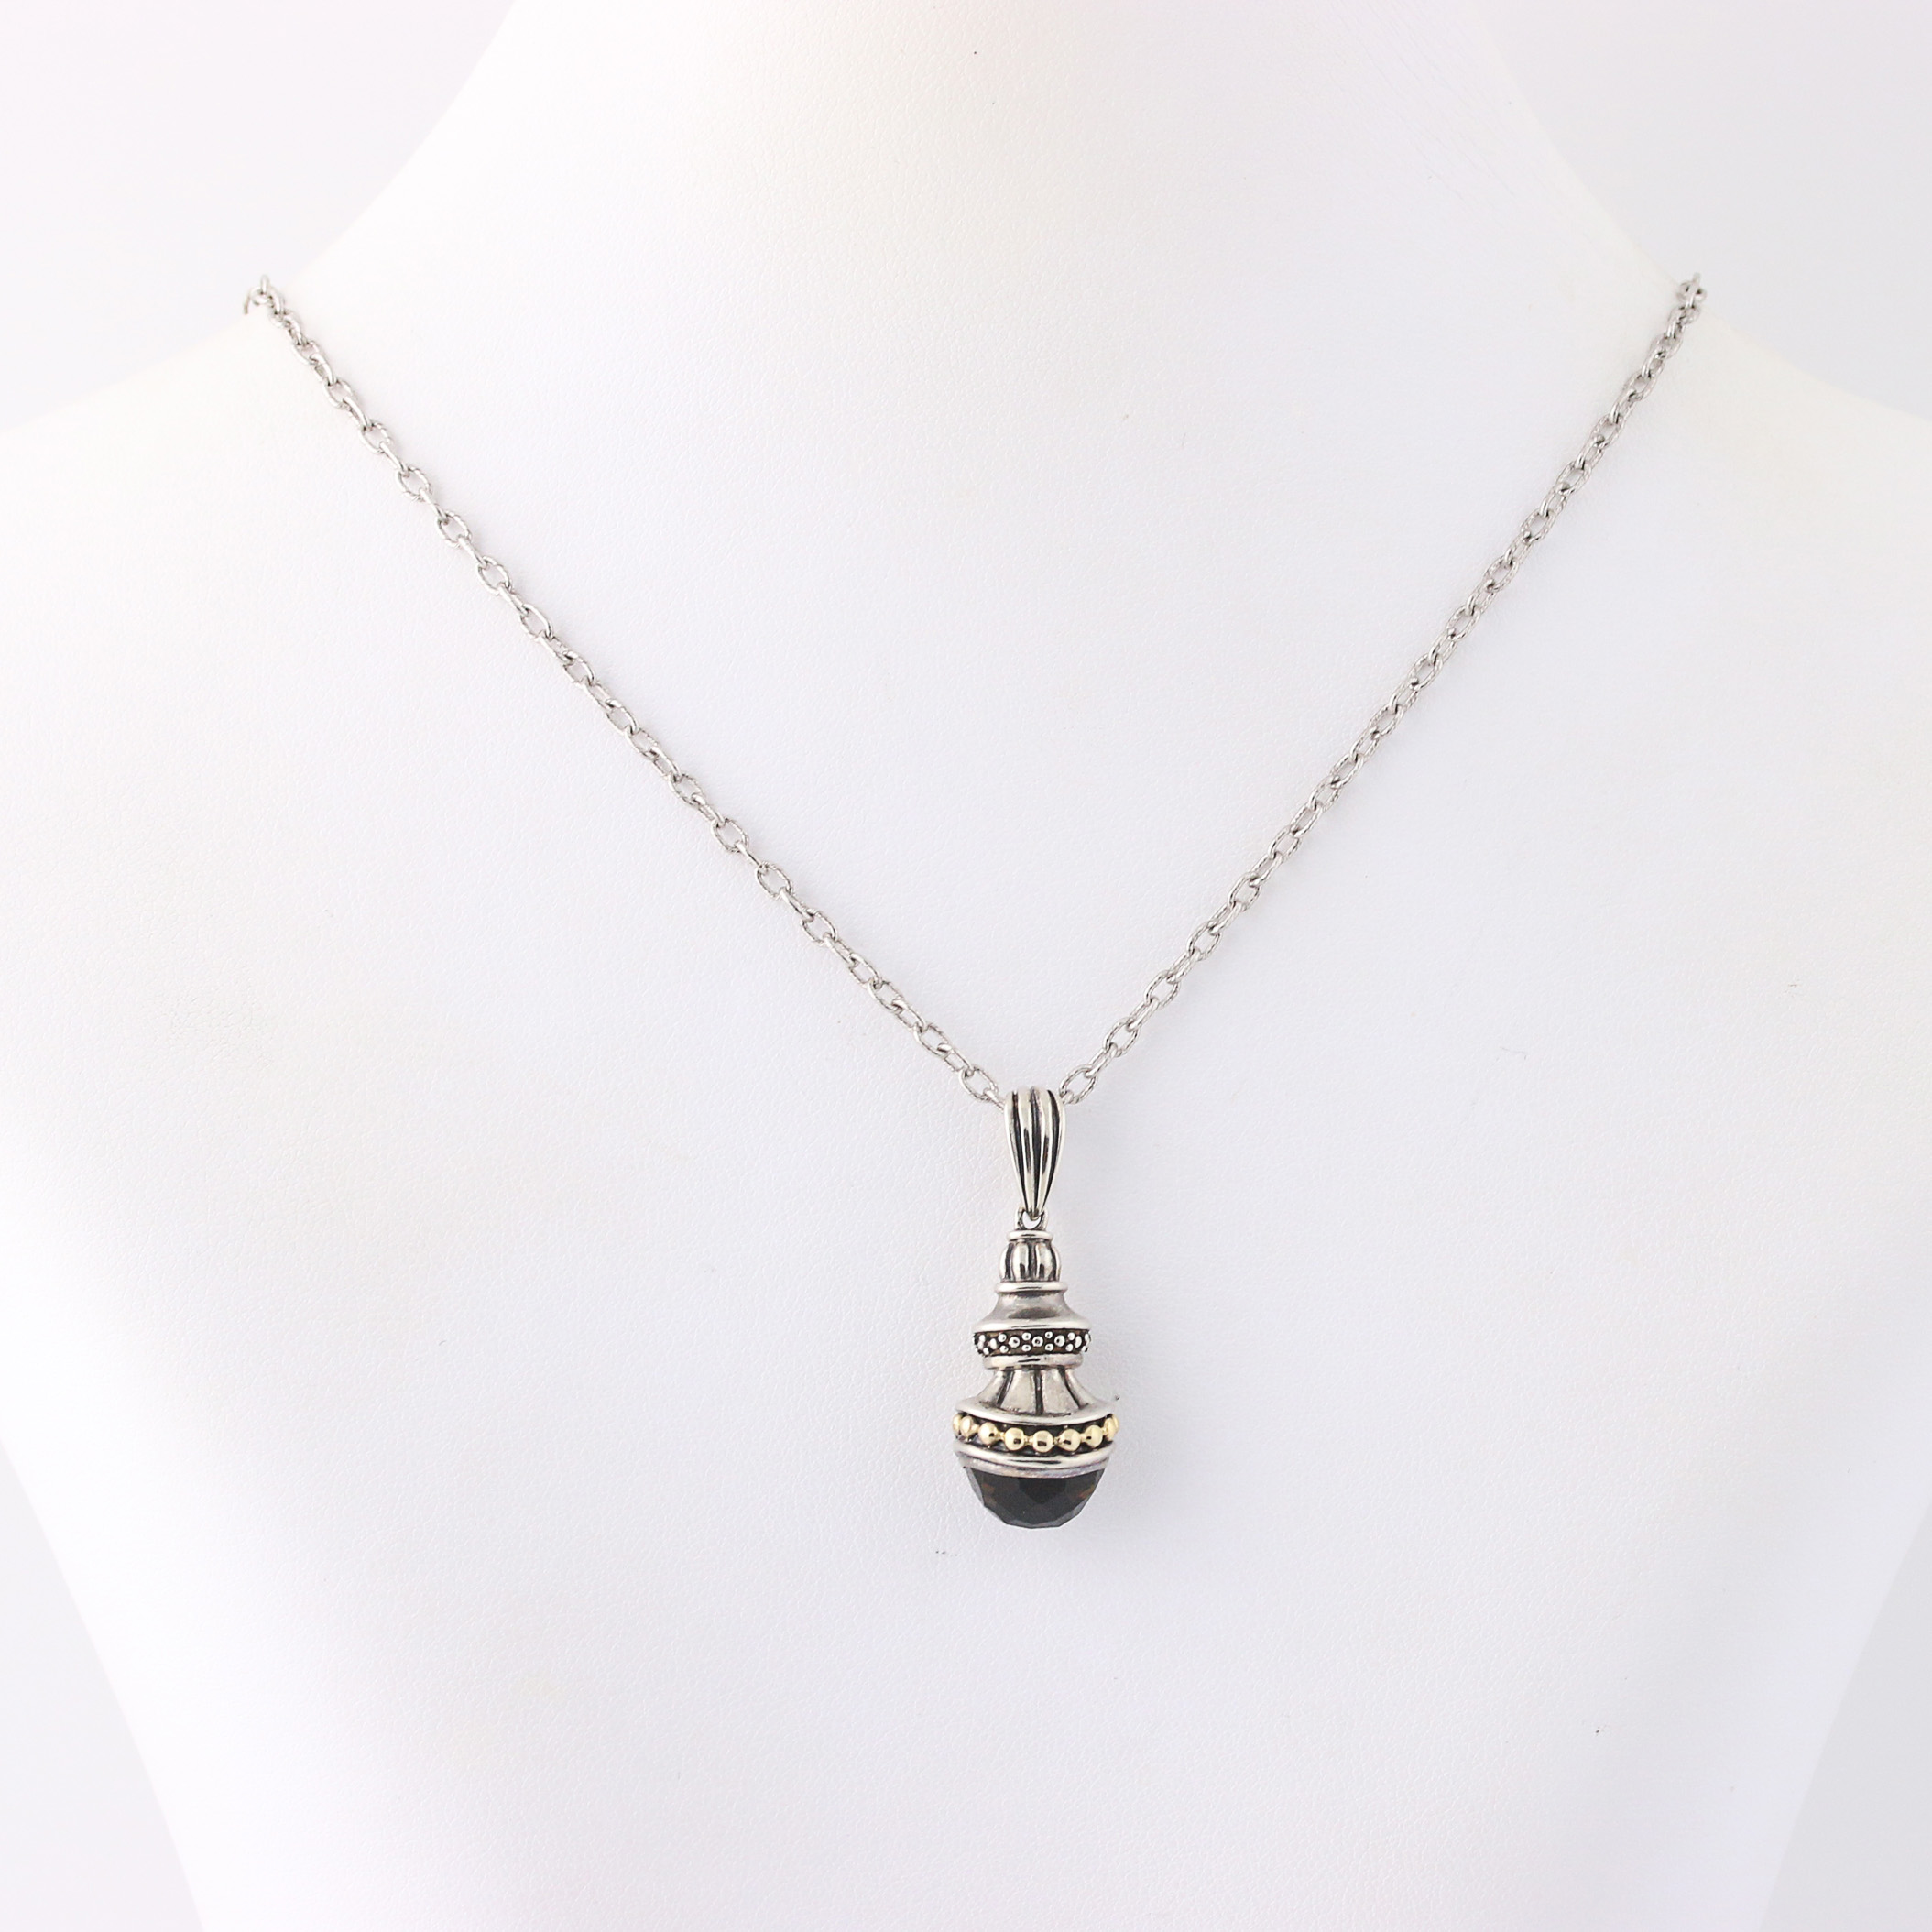 New smoky quartz pendant necklace 18 14 sterling silver 14k click thumbnails to enlarge aloadofball Image collections